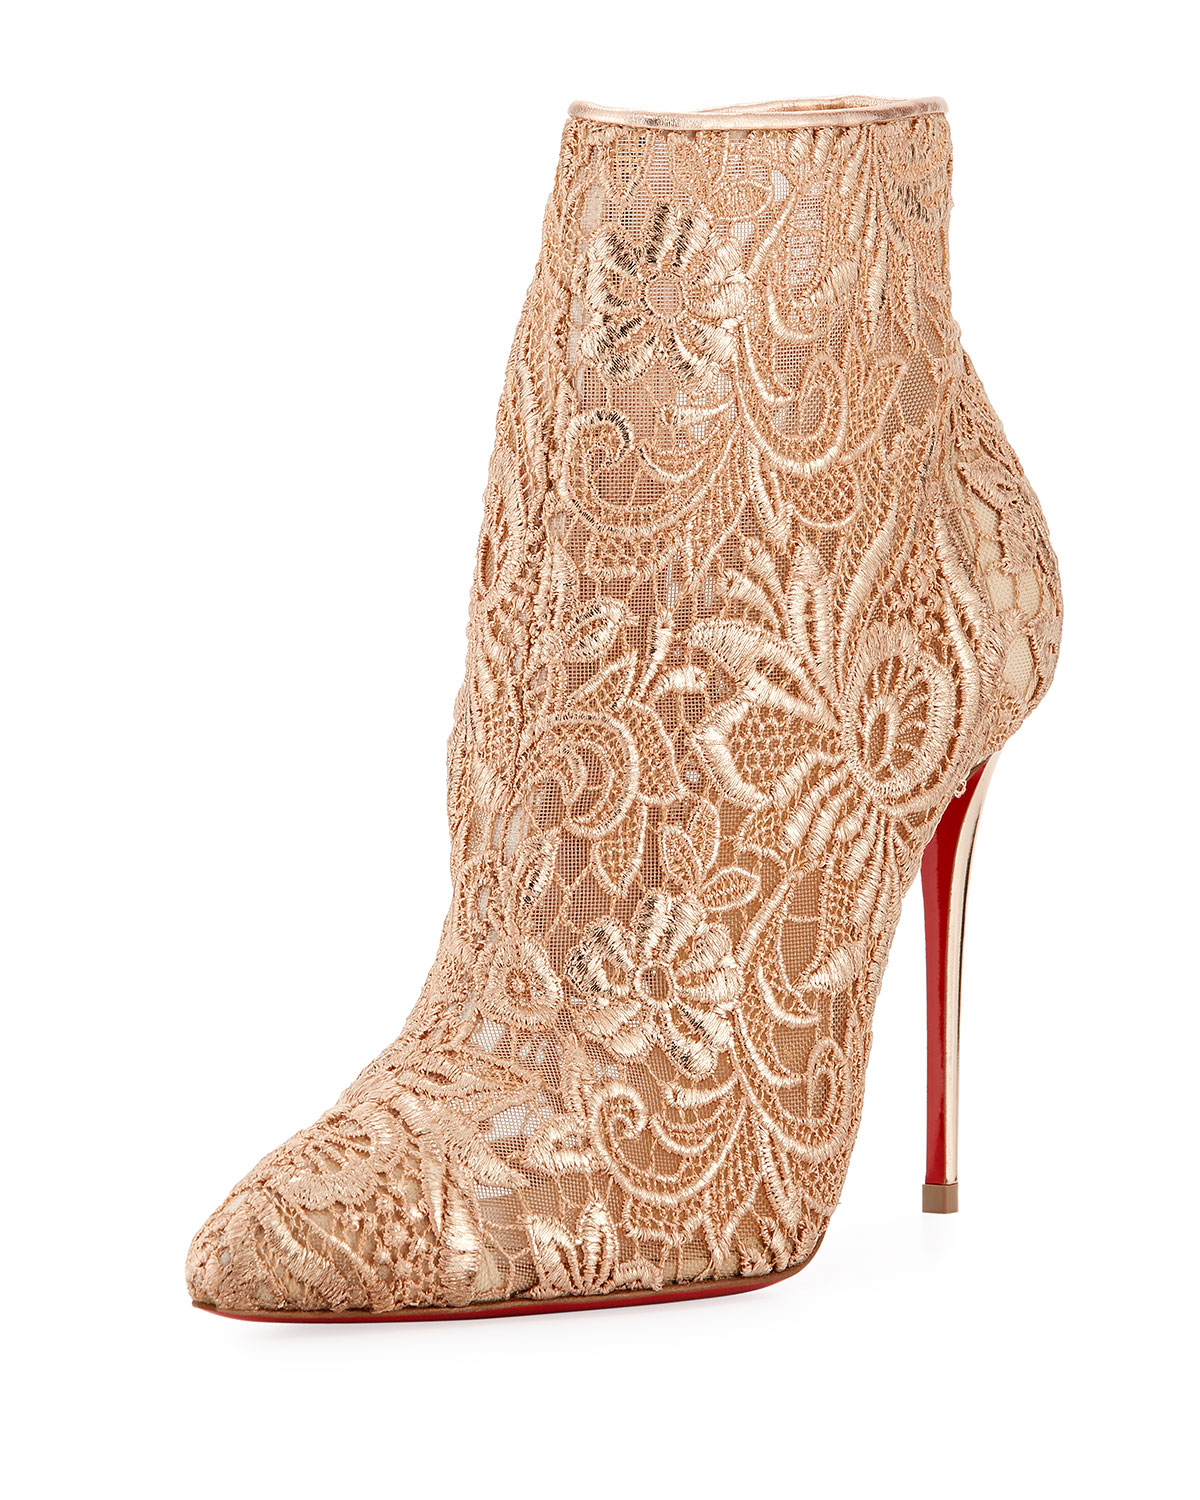 the latest 85ef5 2ed66 Christian Louboutin Gipsy Floral-Lace Red Sole Bootie